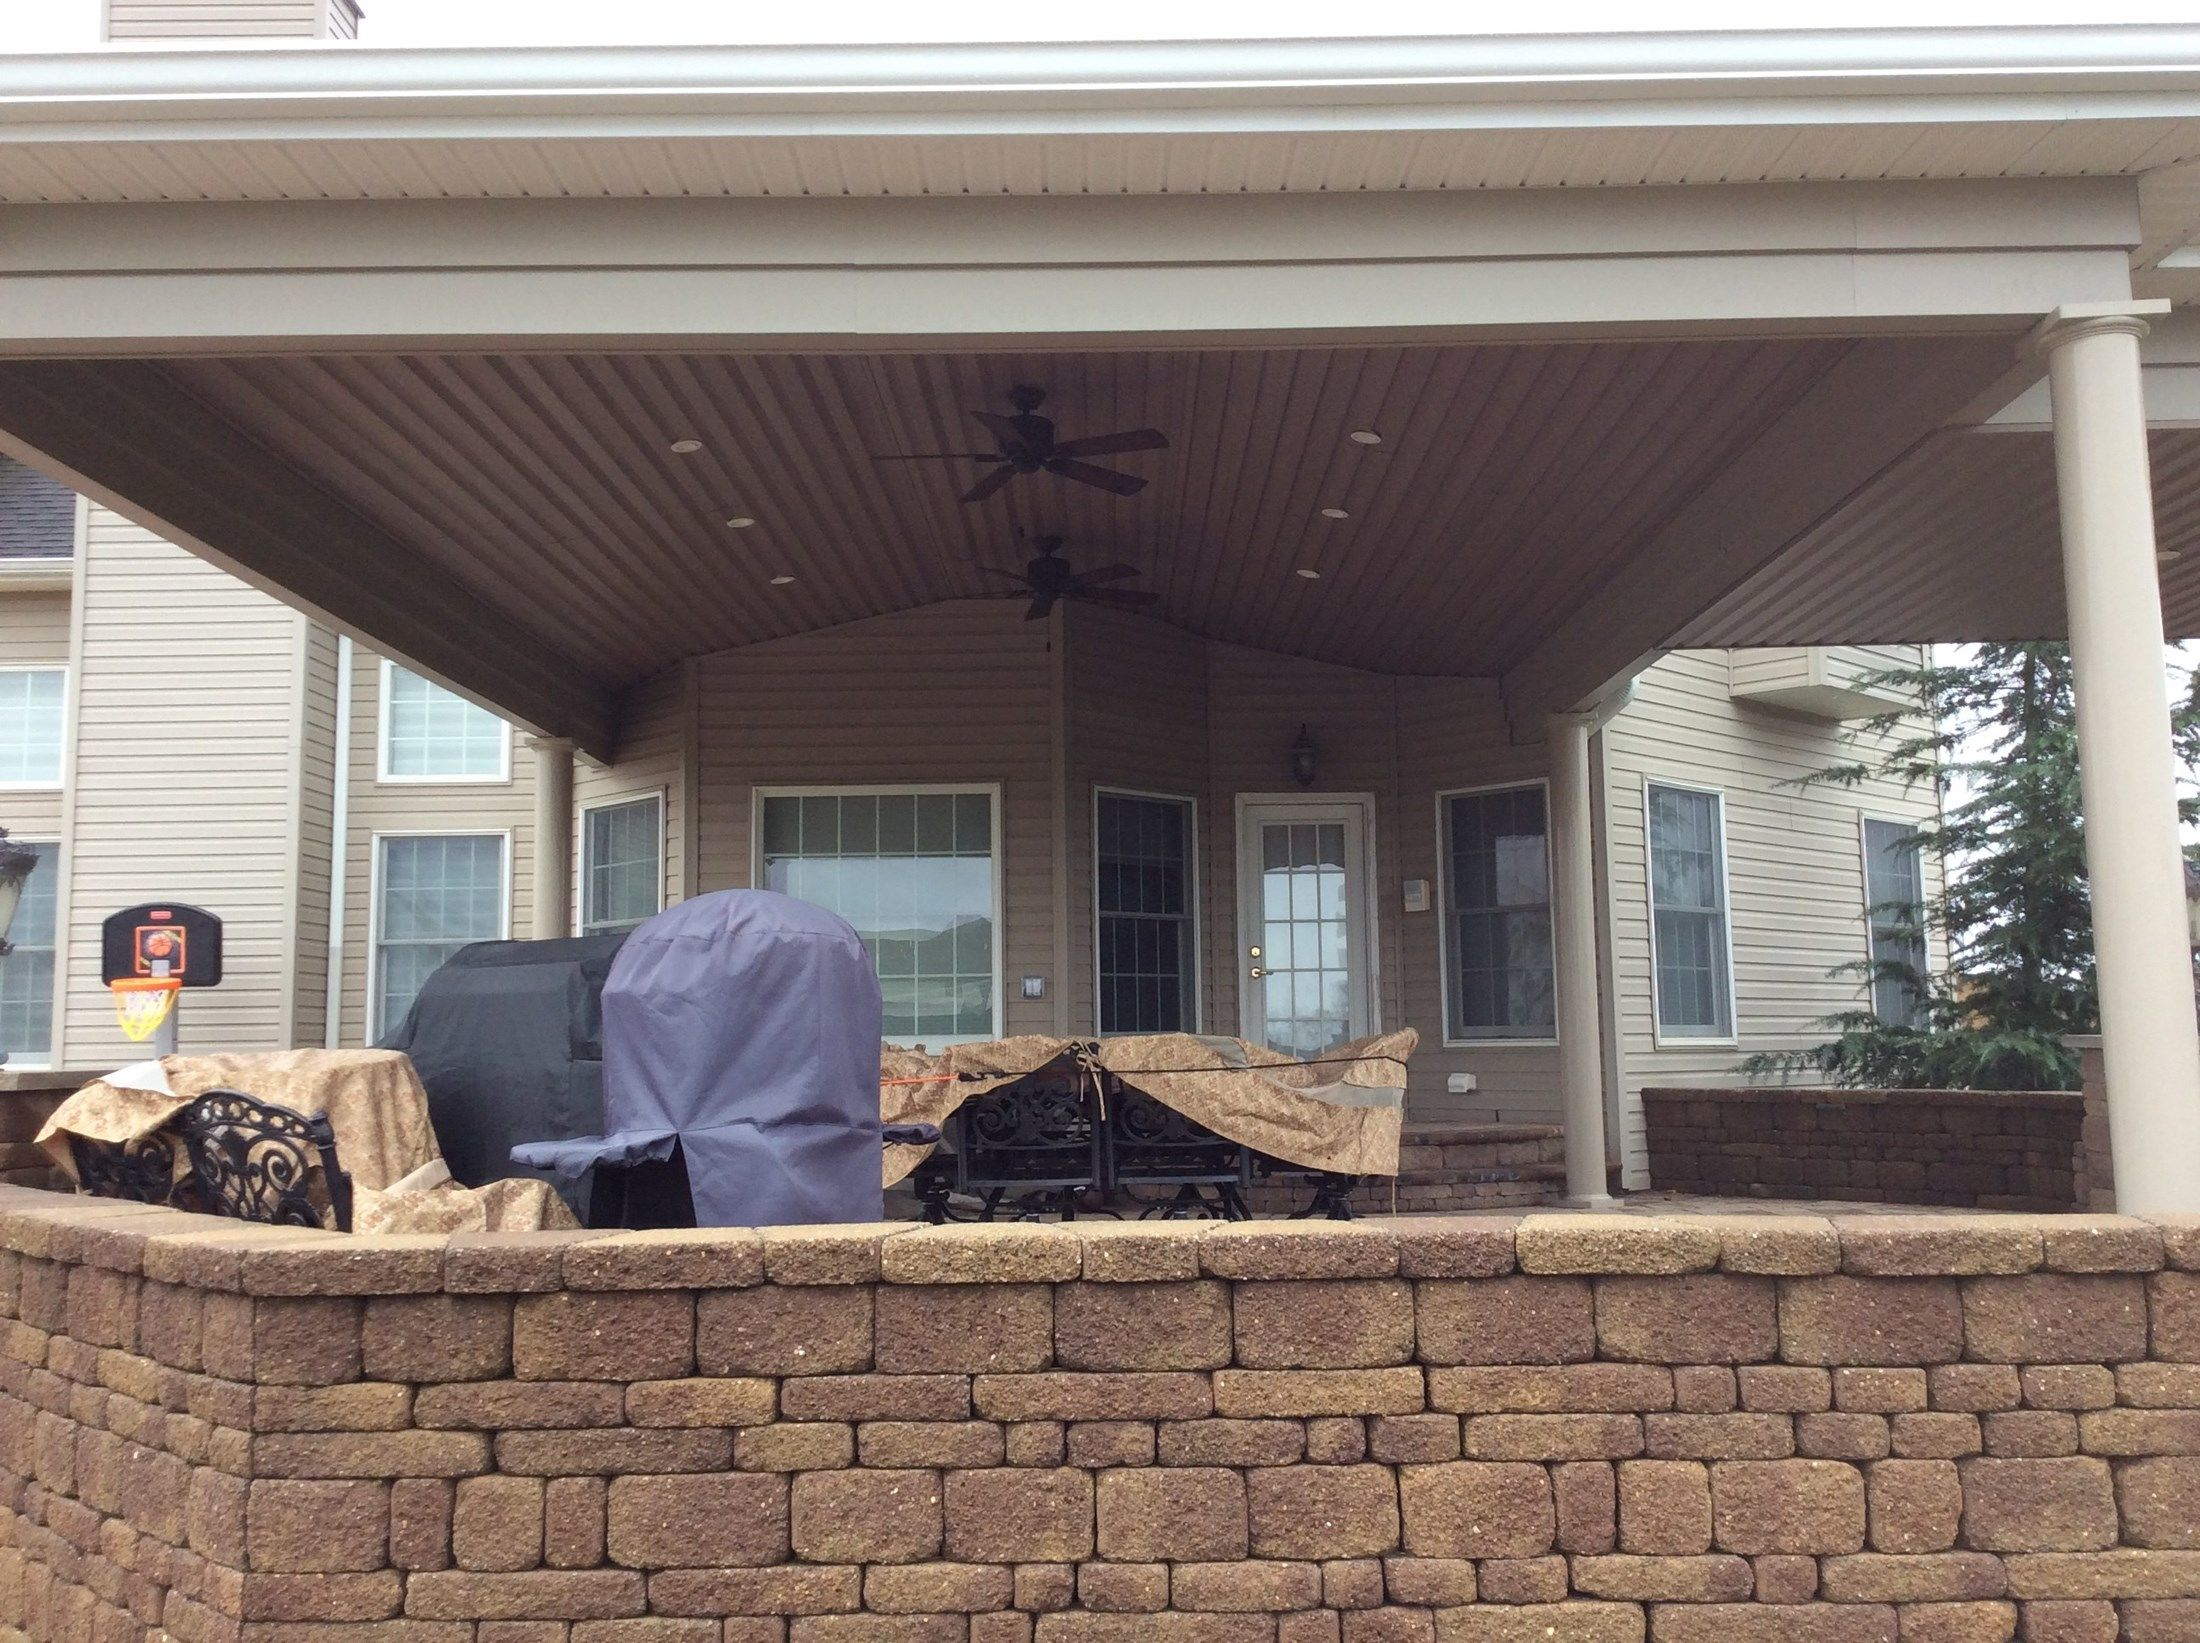 Custom Roof over Paver Patio in Upper Freehold NJ - Picture 3317